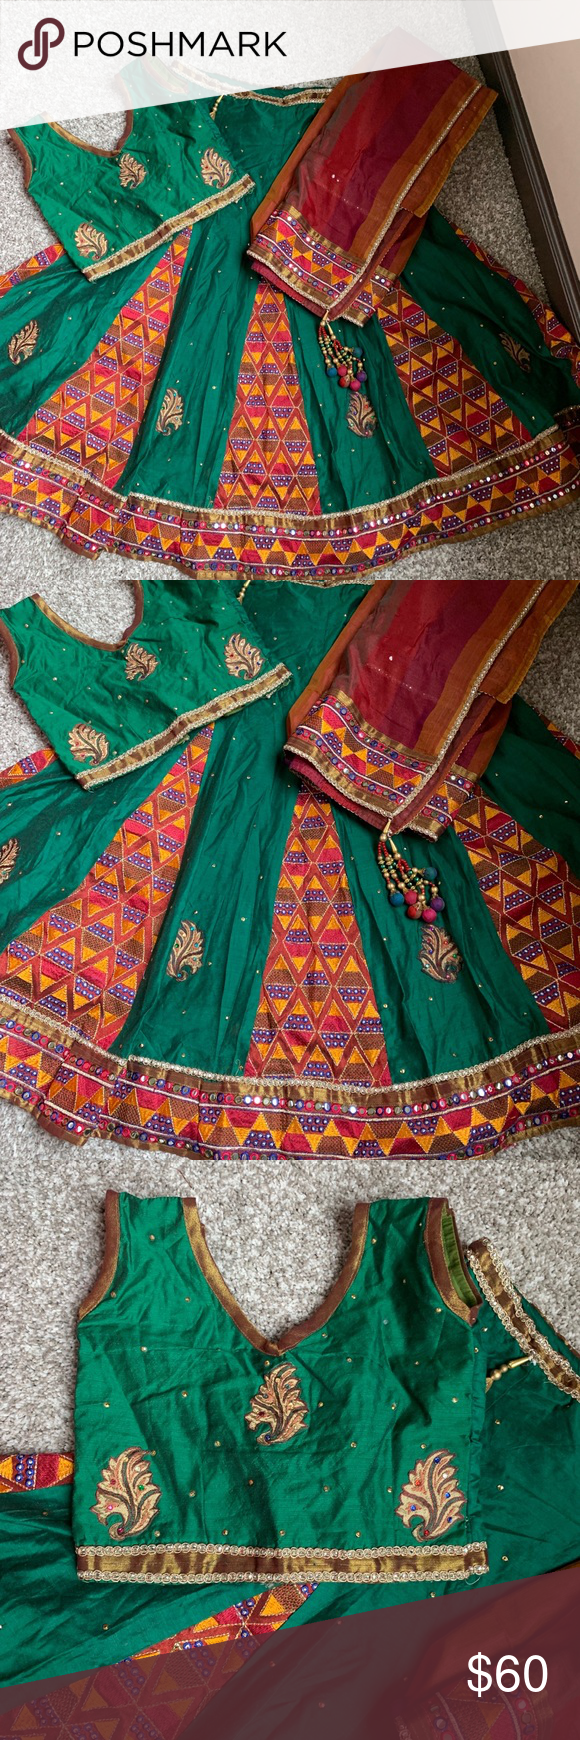 "Chaniya choli for a girl 26""bust31""length Really pretty green and maroon color Chaniya choli for a girl size 32.. for detail sizing see pics.worn once Other #chaniyacholi"